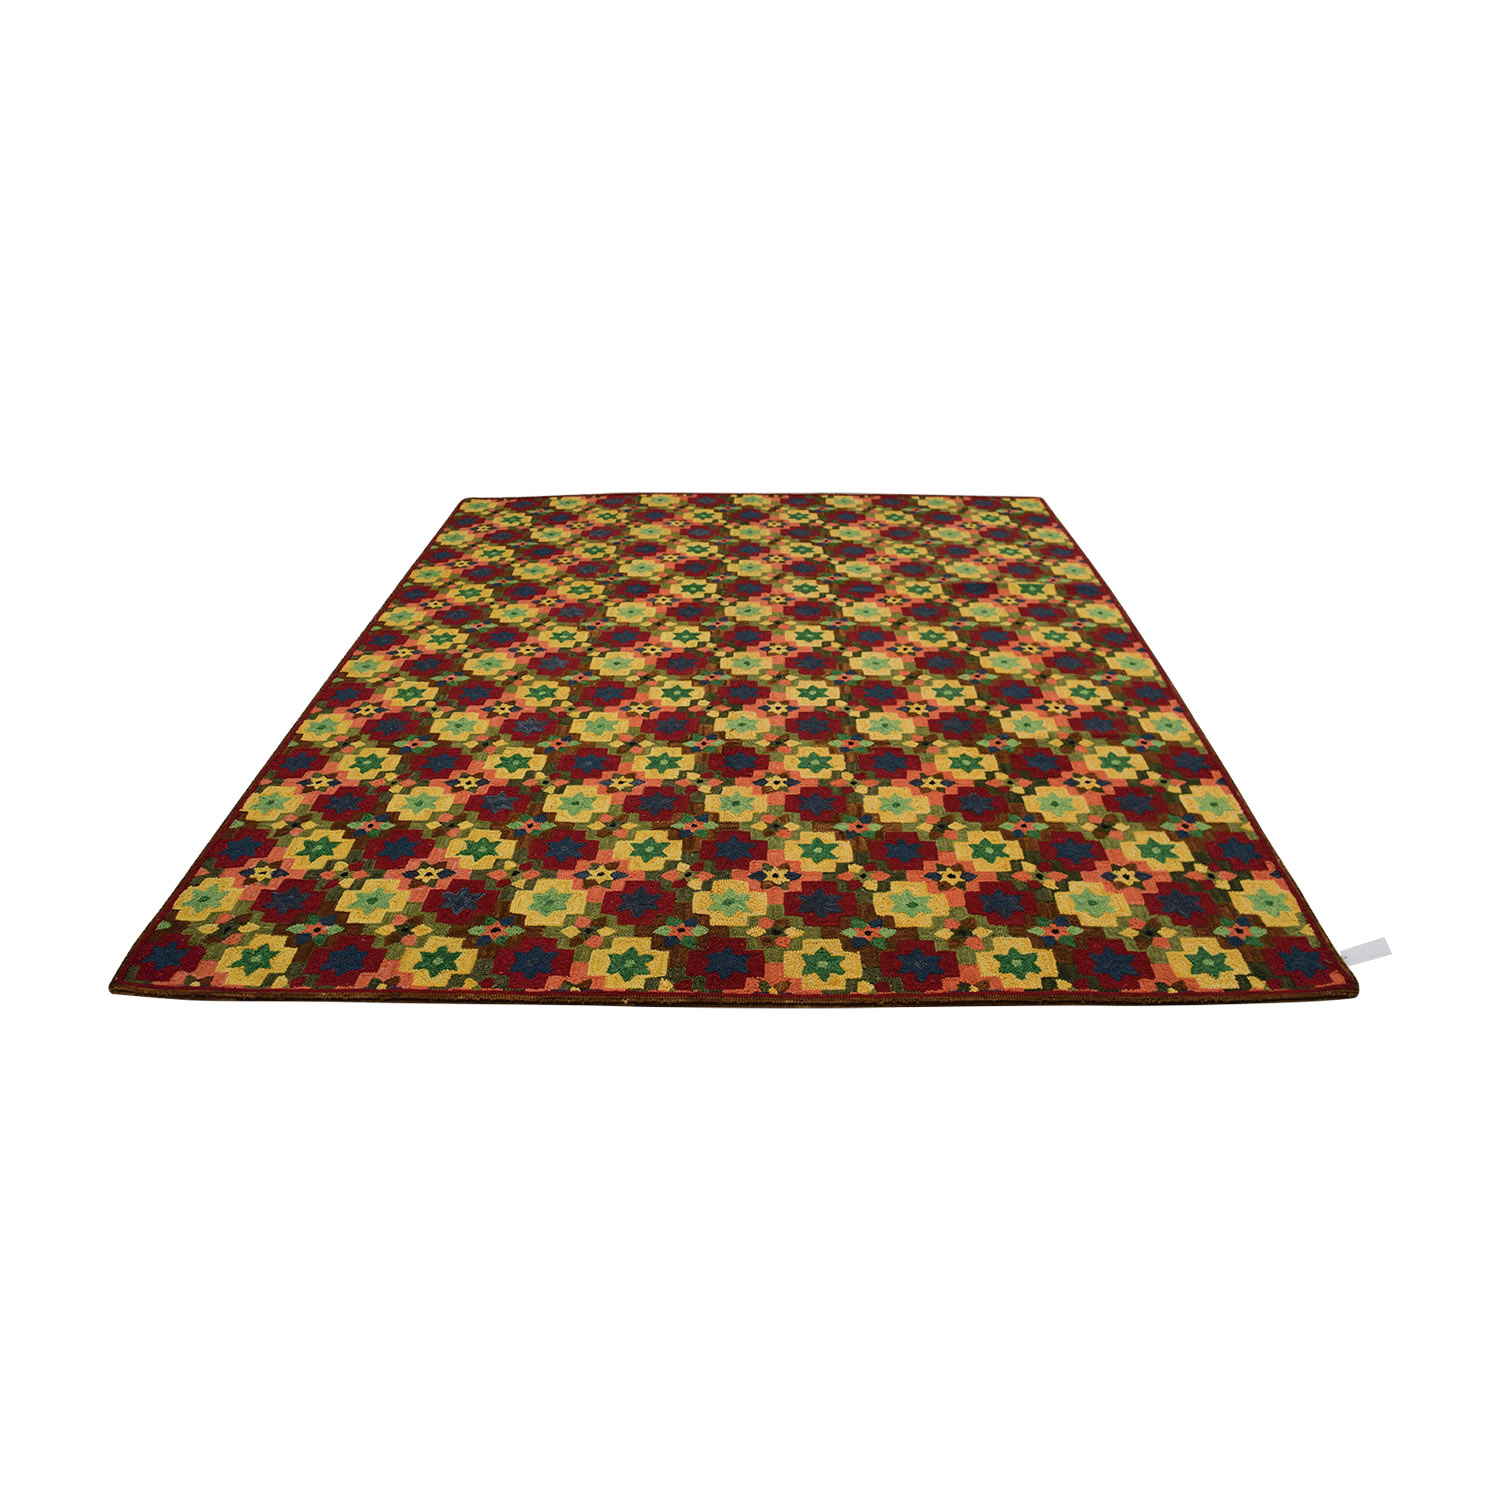 Obeetee Hand Hooked Multi Colored Floral Rug Obeetee